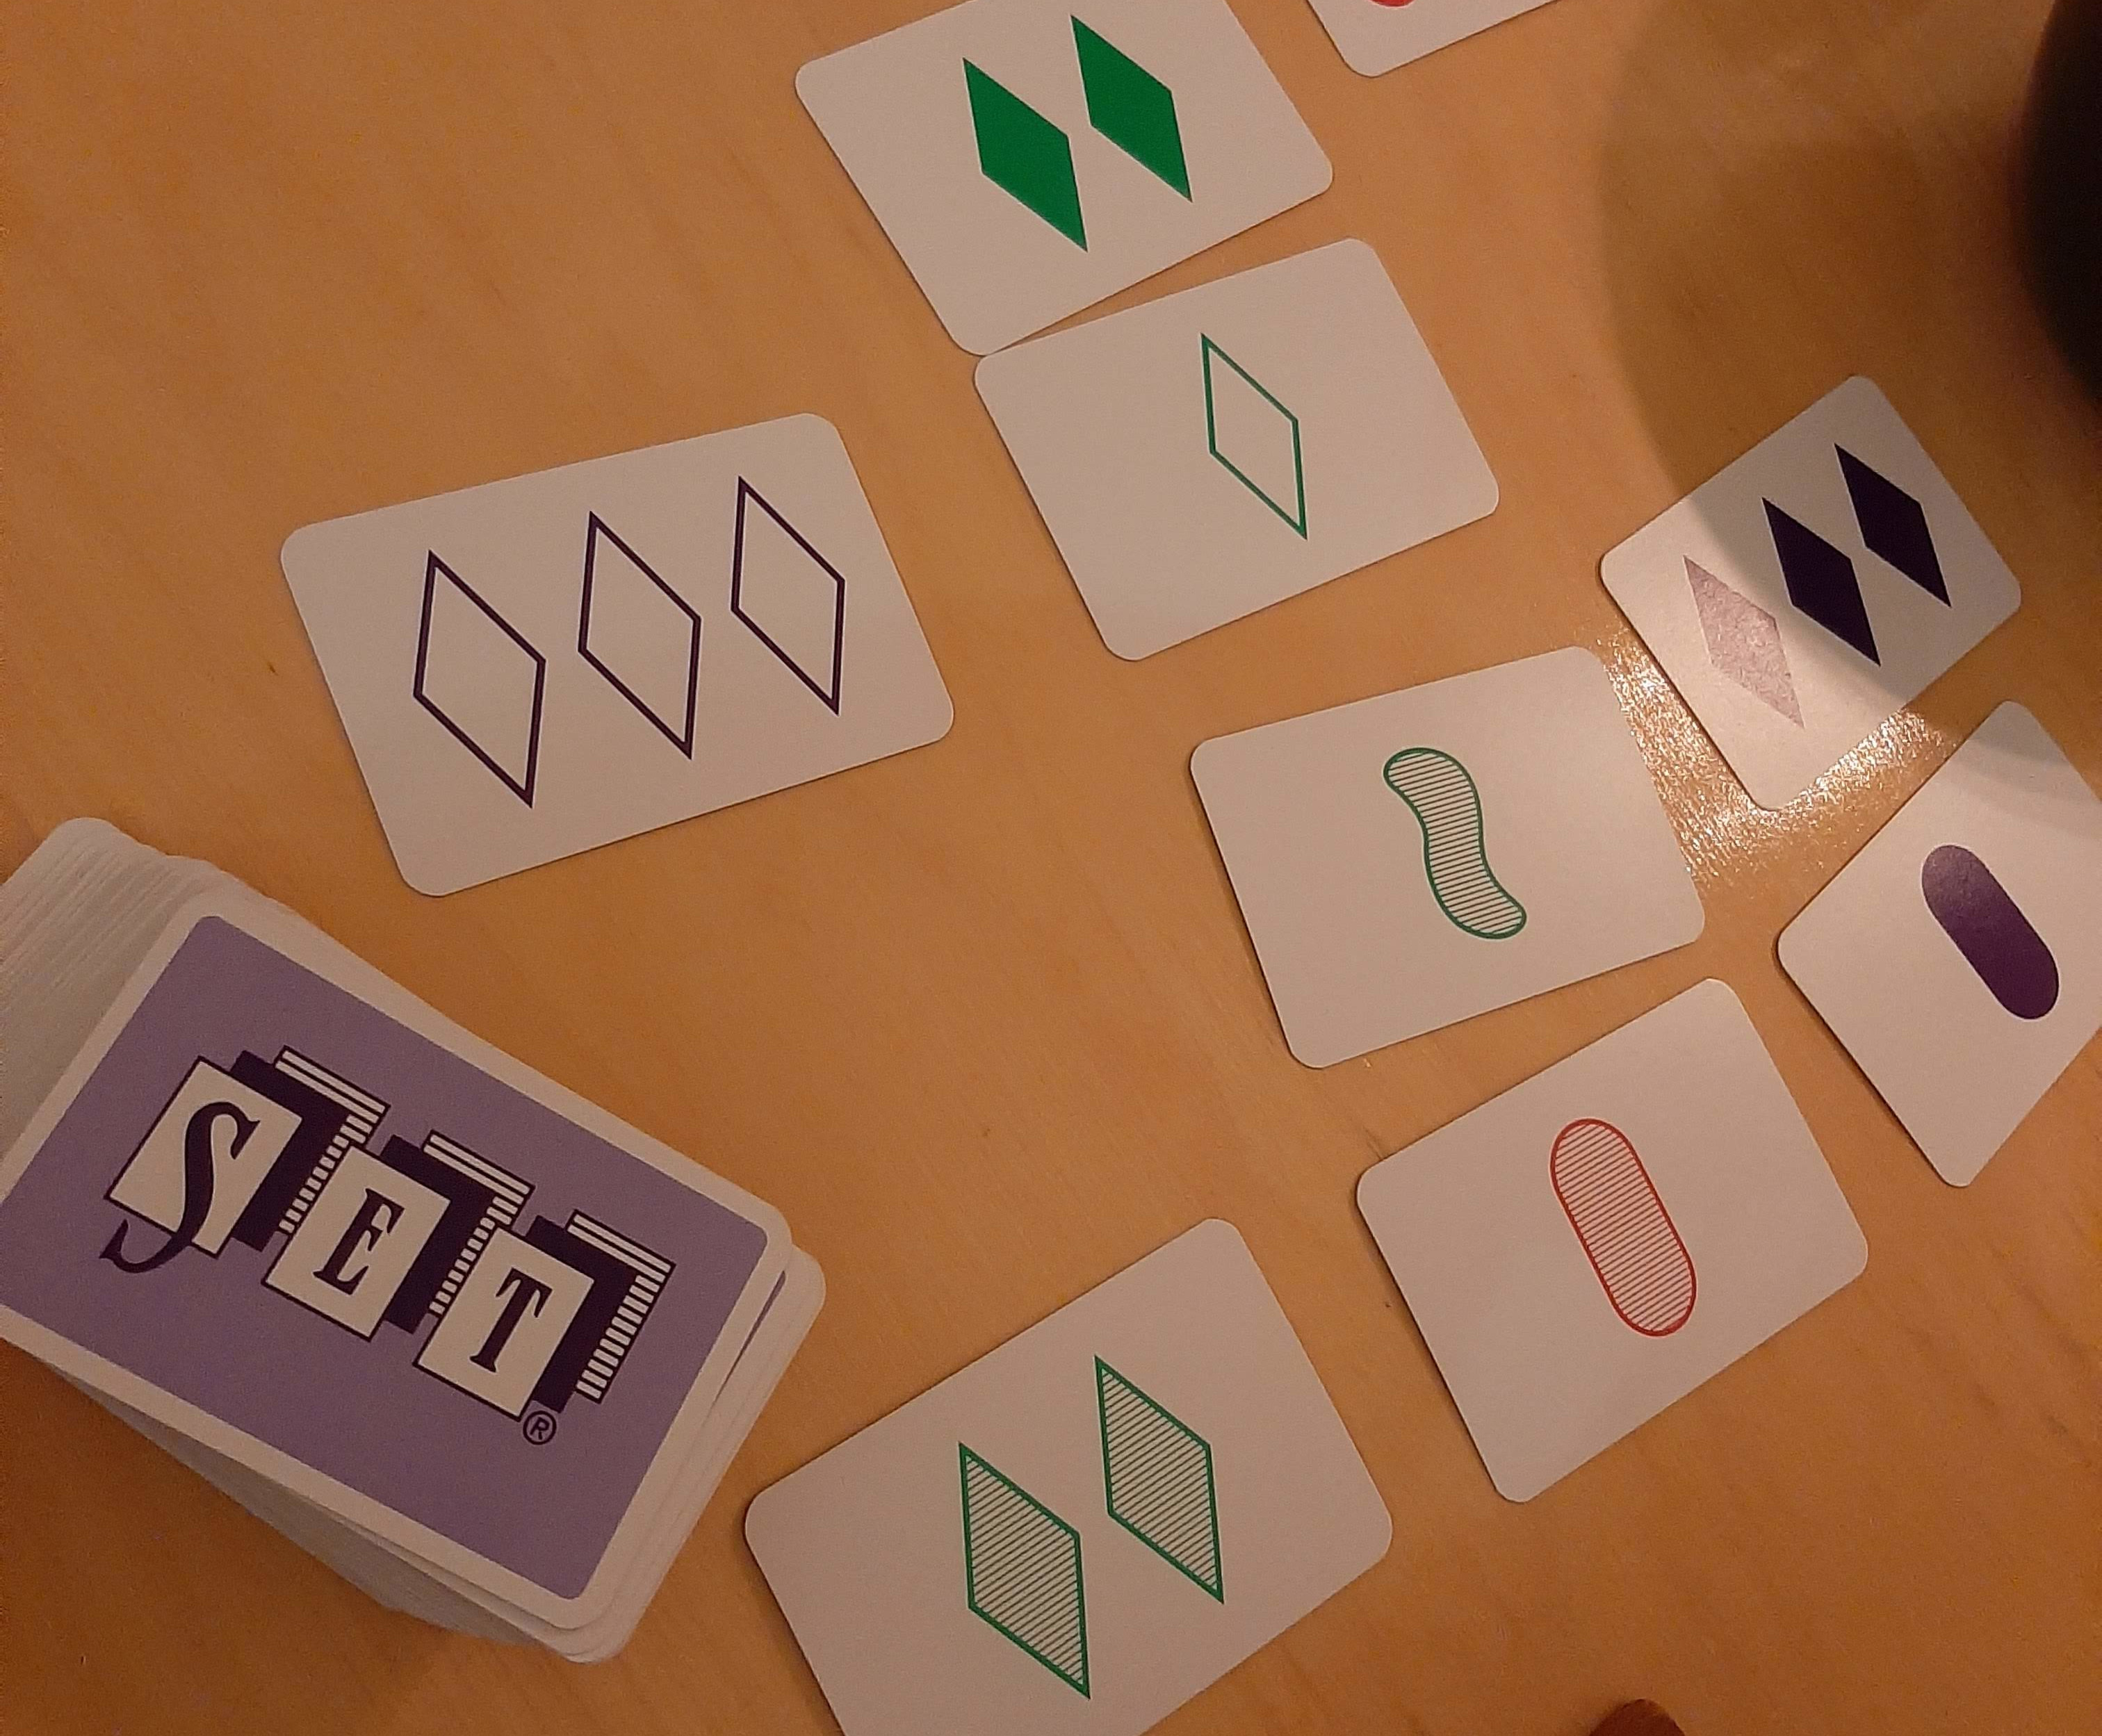 Image of the card game Set